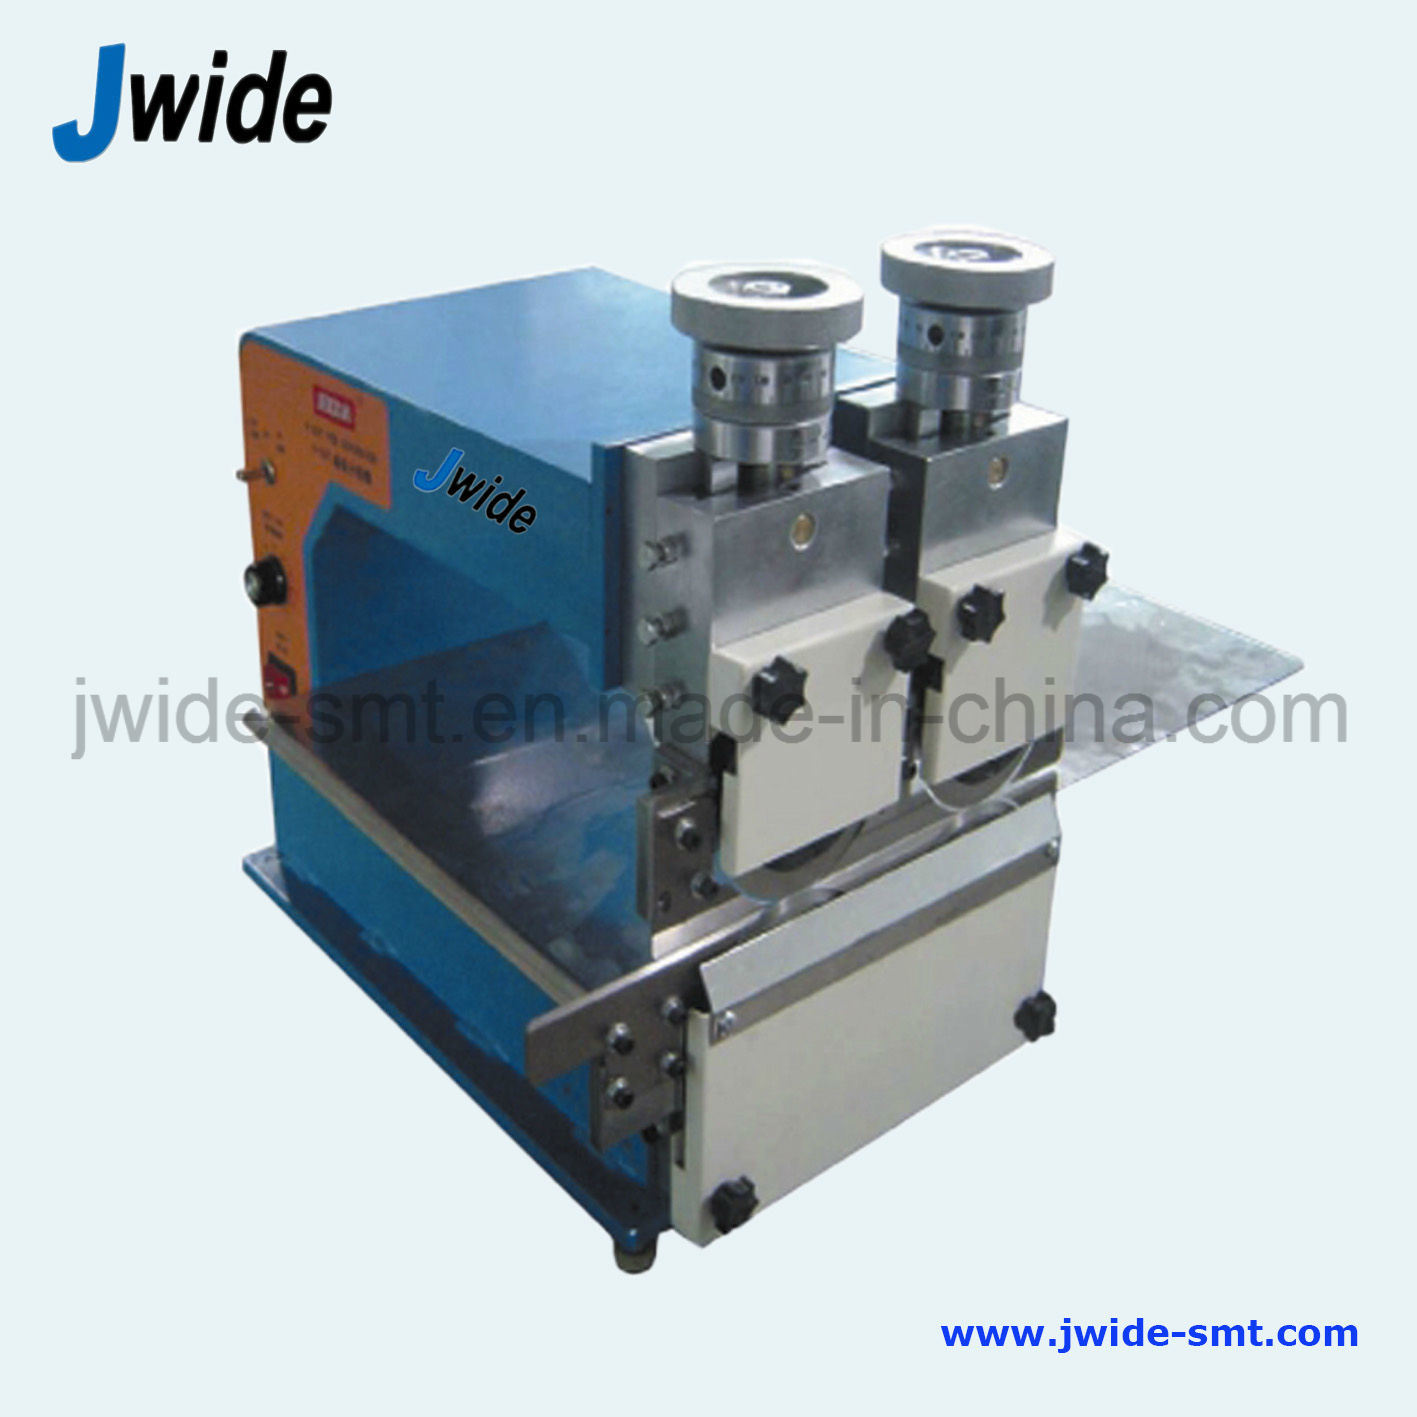 Aluminum PCB Cutting Machine for SMT Assembly Line